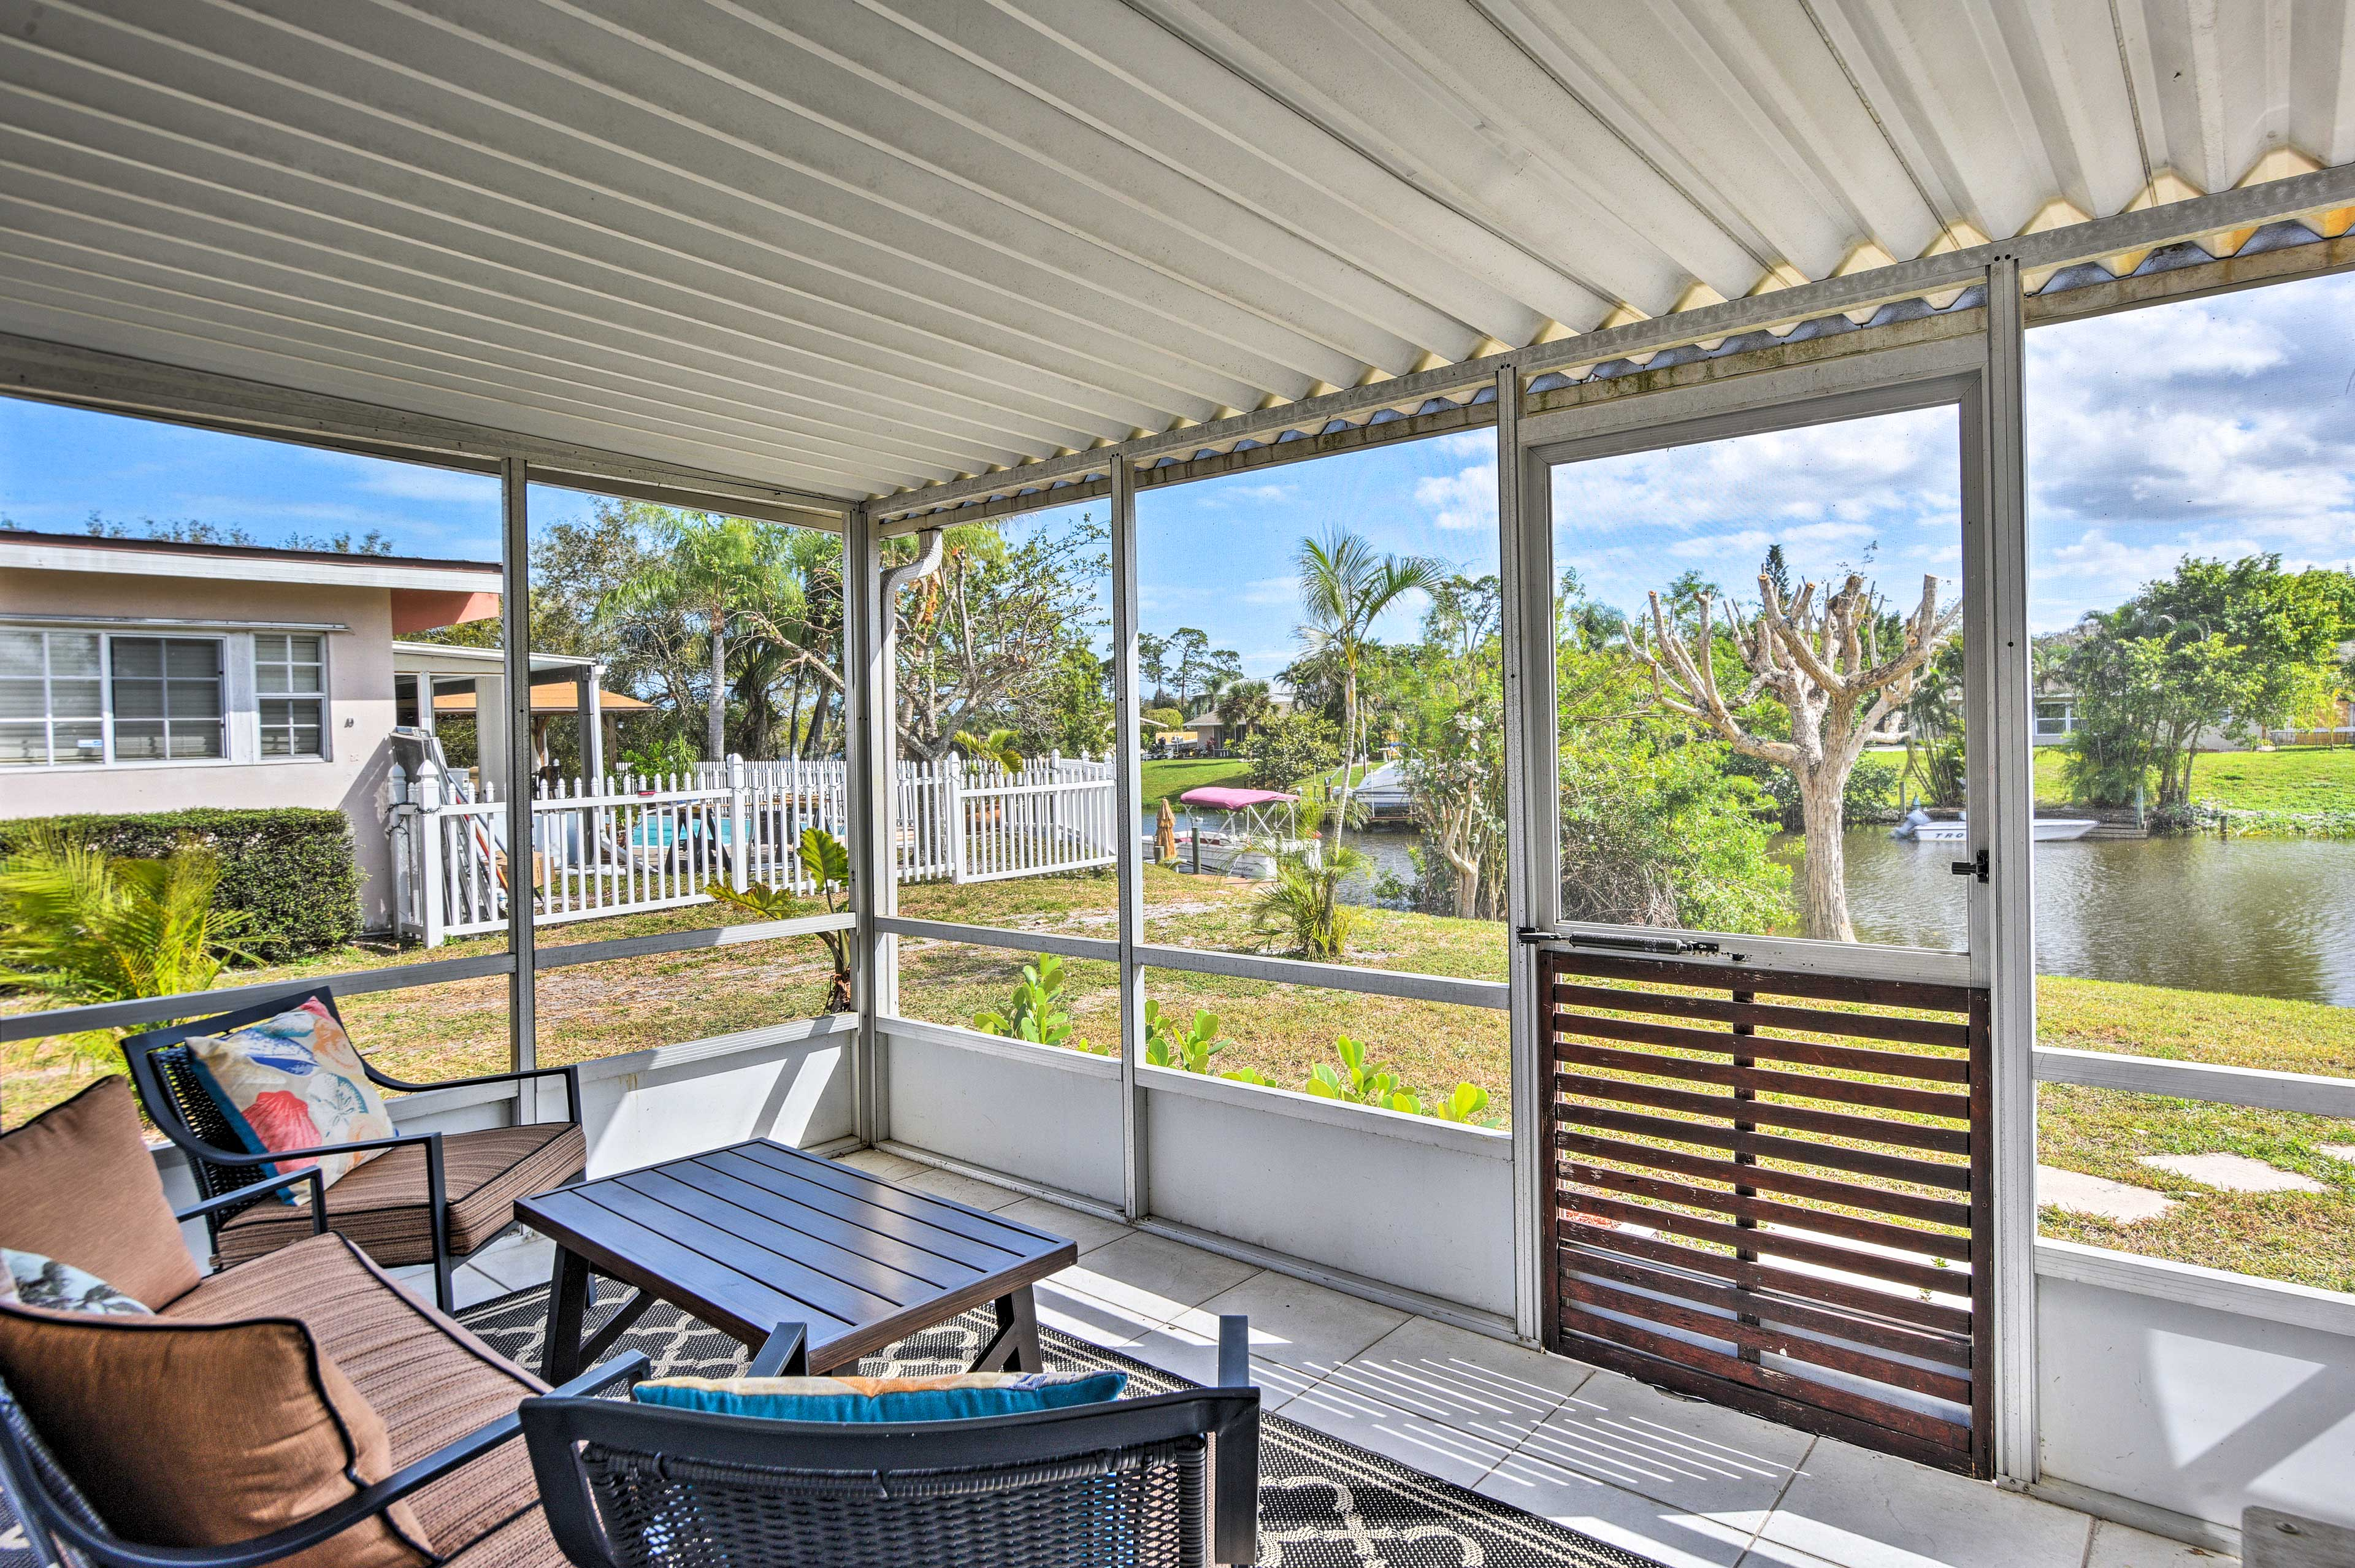 You'll love watching boats sail by on the canal while you relax in the sun room.